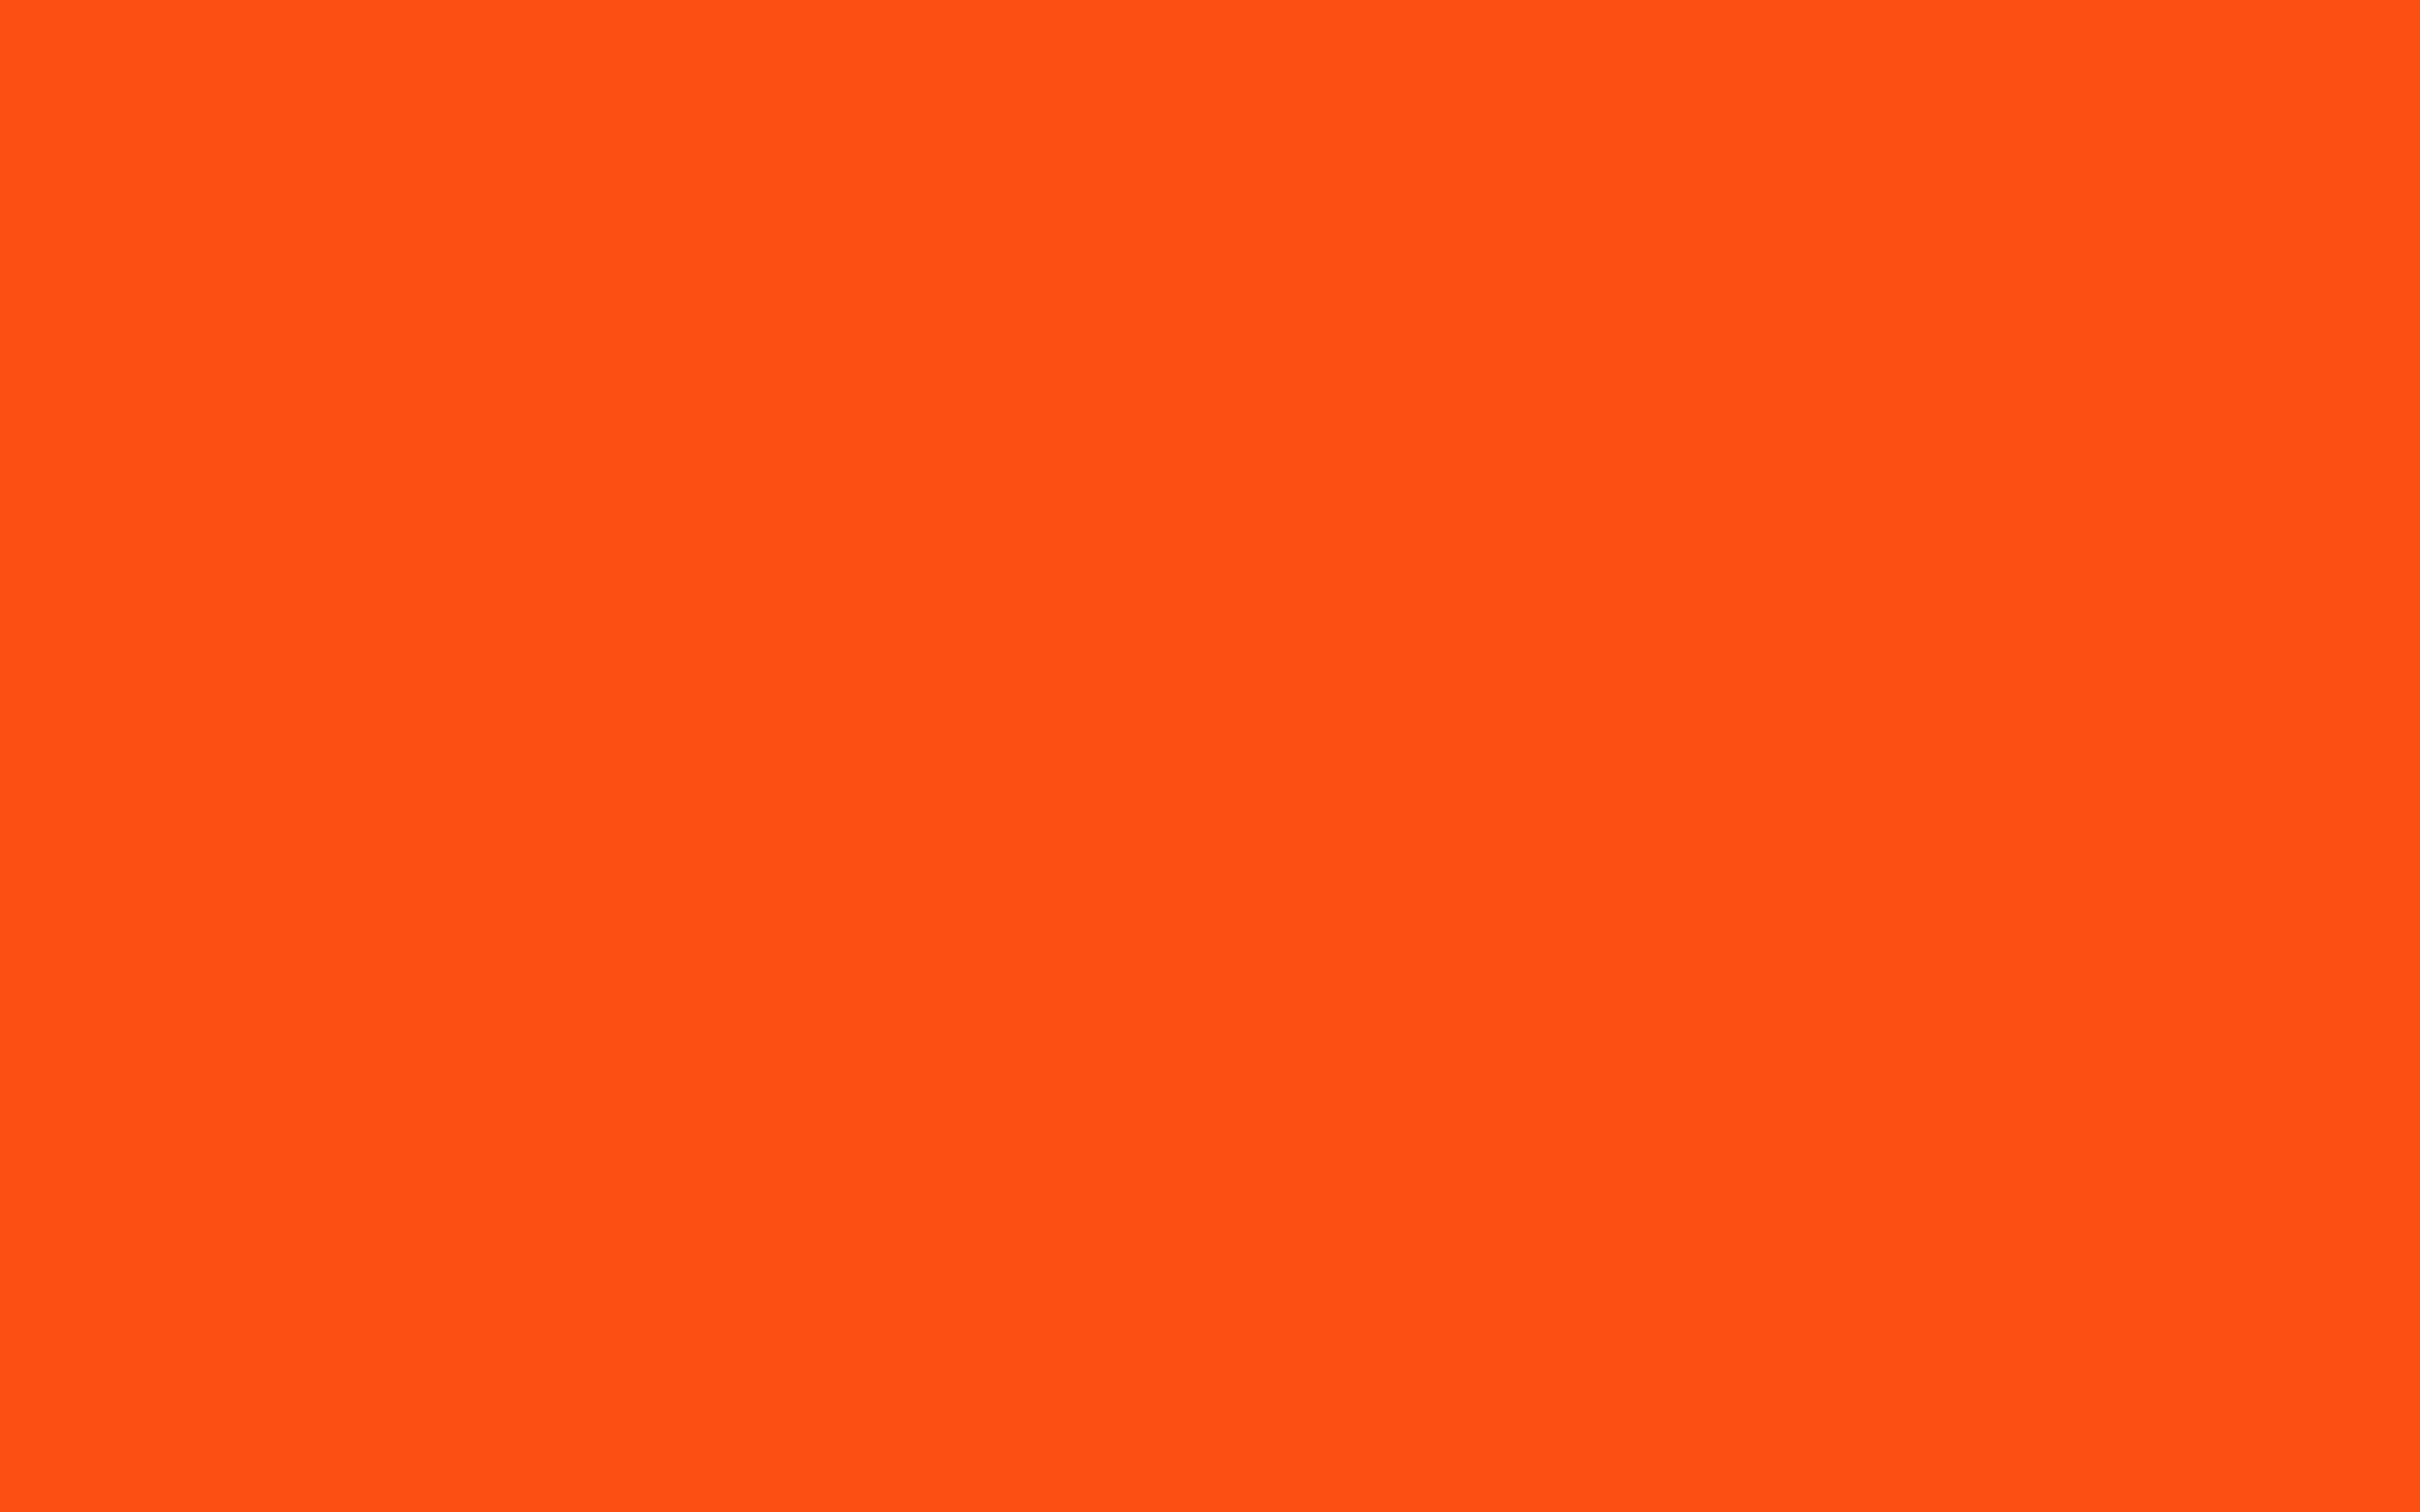 2560x1600 Orioles Orange Solid Color Background